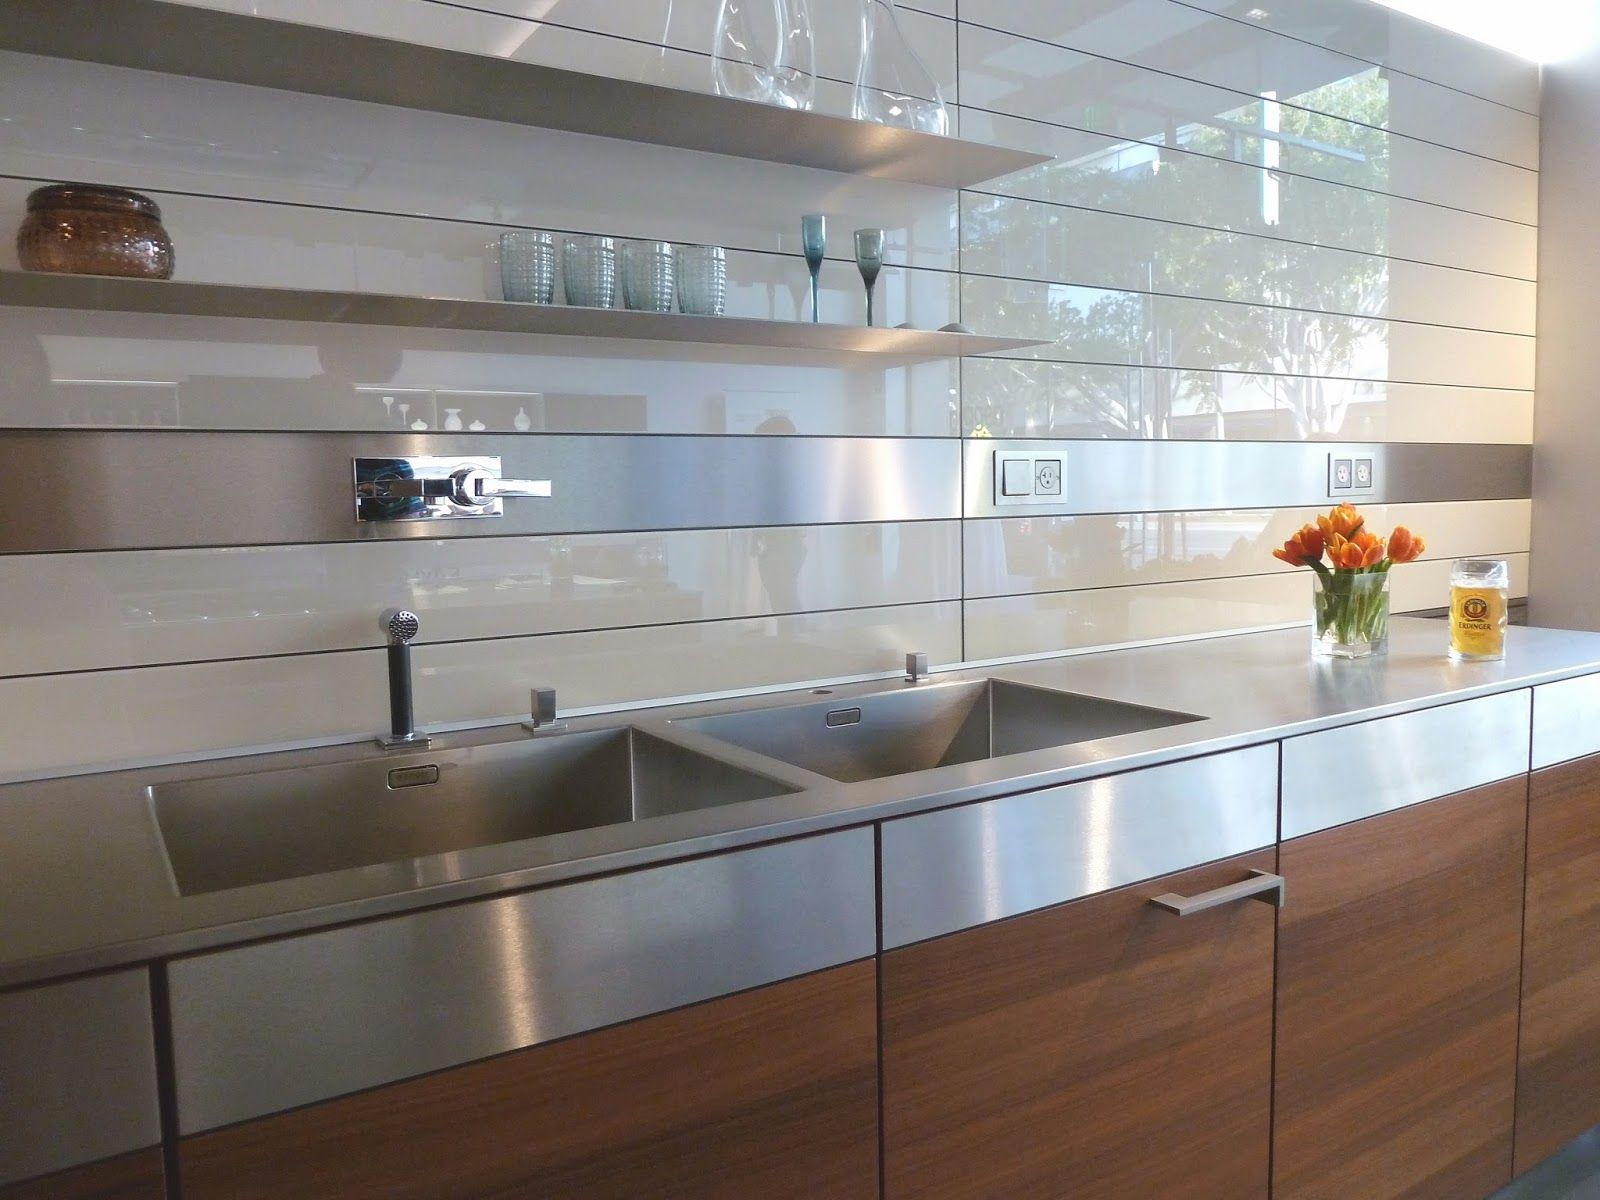 Kitchen rear wall has a backlit glass niche with - Glass wall panels kitchen ...